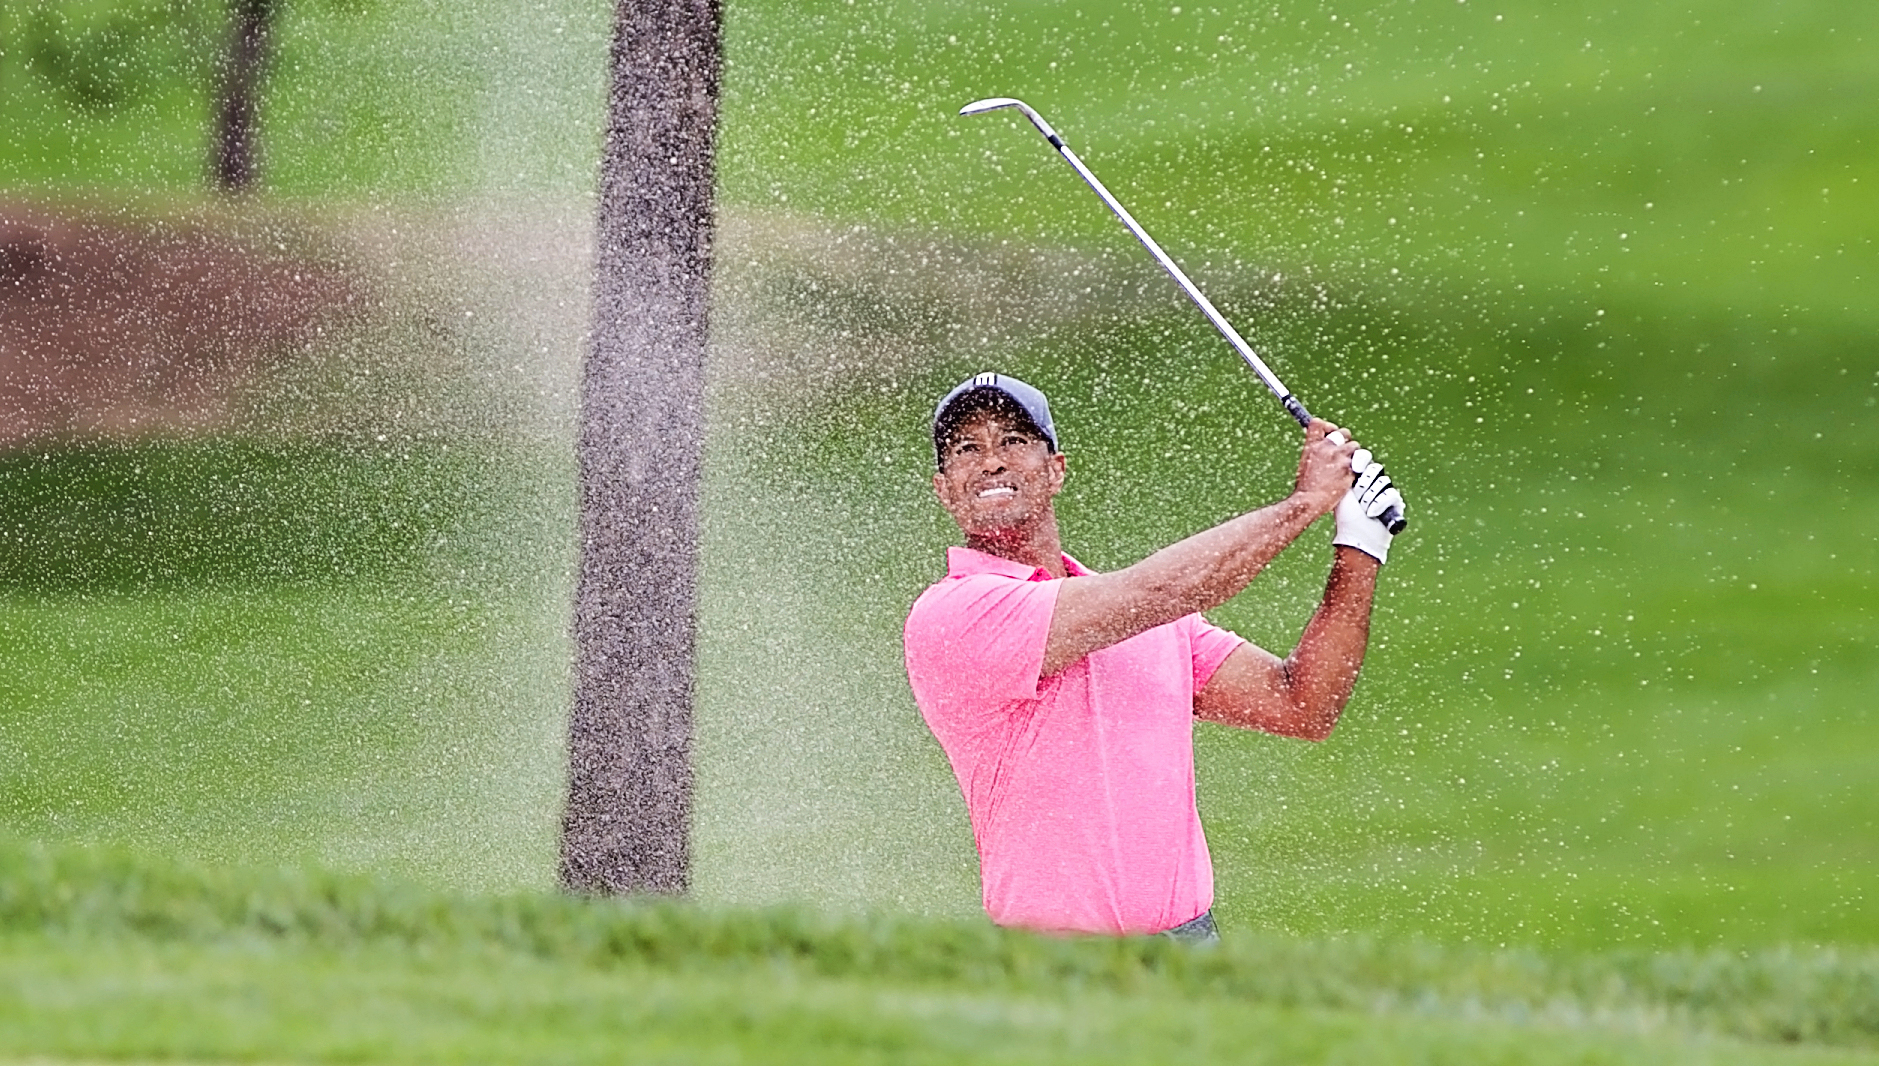 Woods is one back going into the final day at Valspar./CARMEN MANDATO